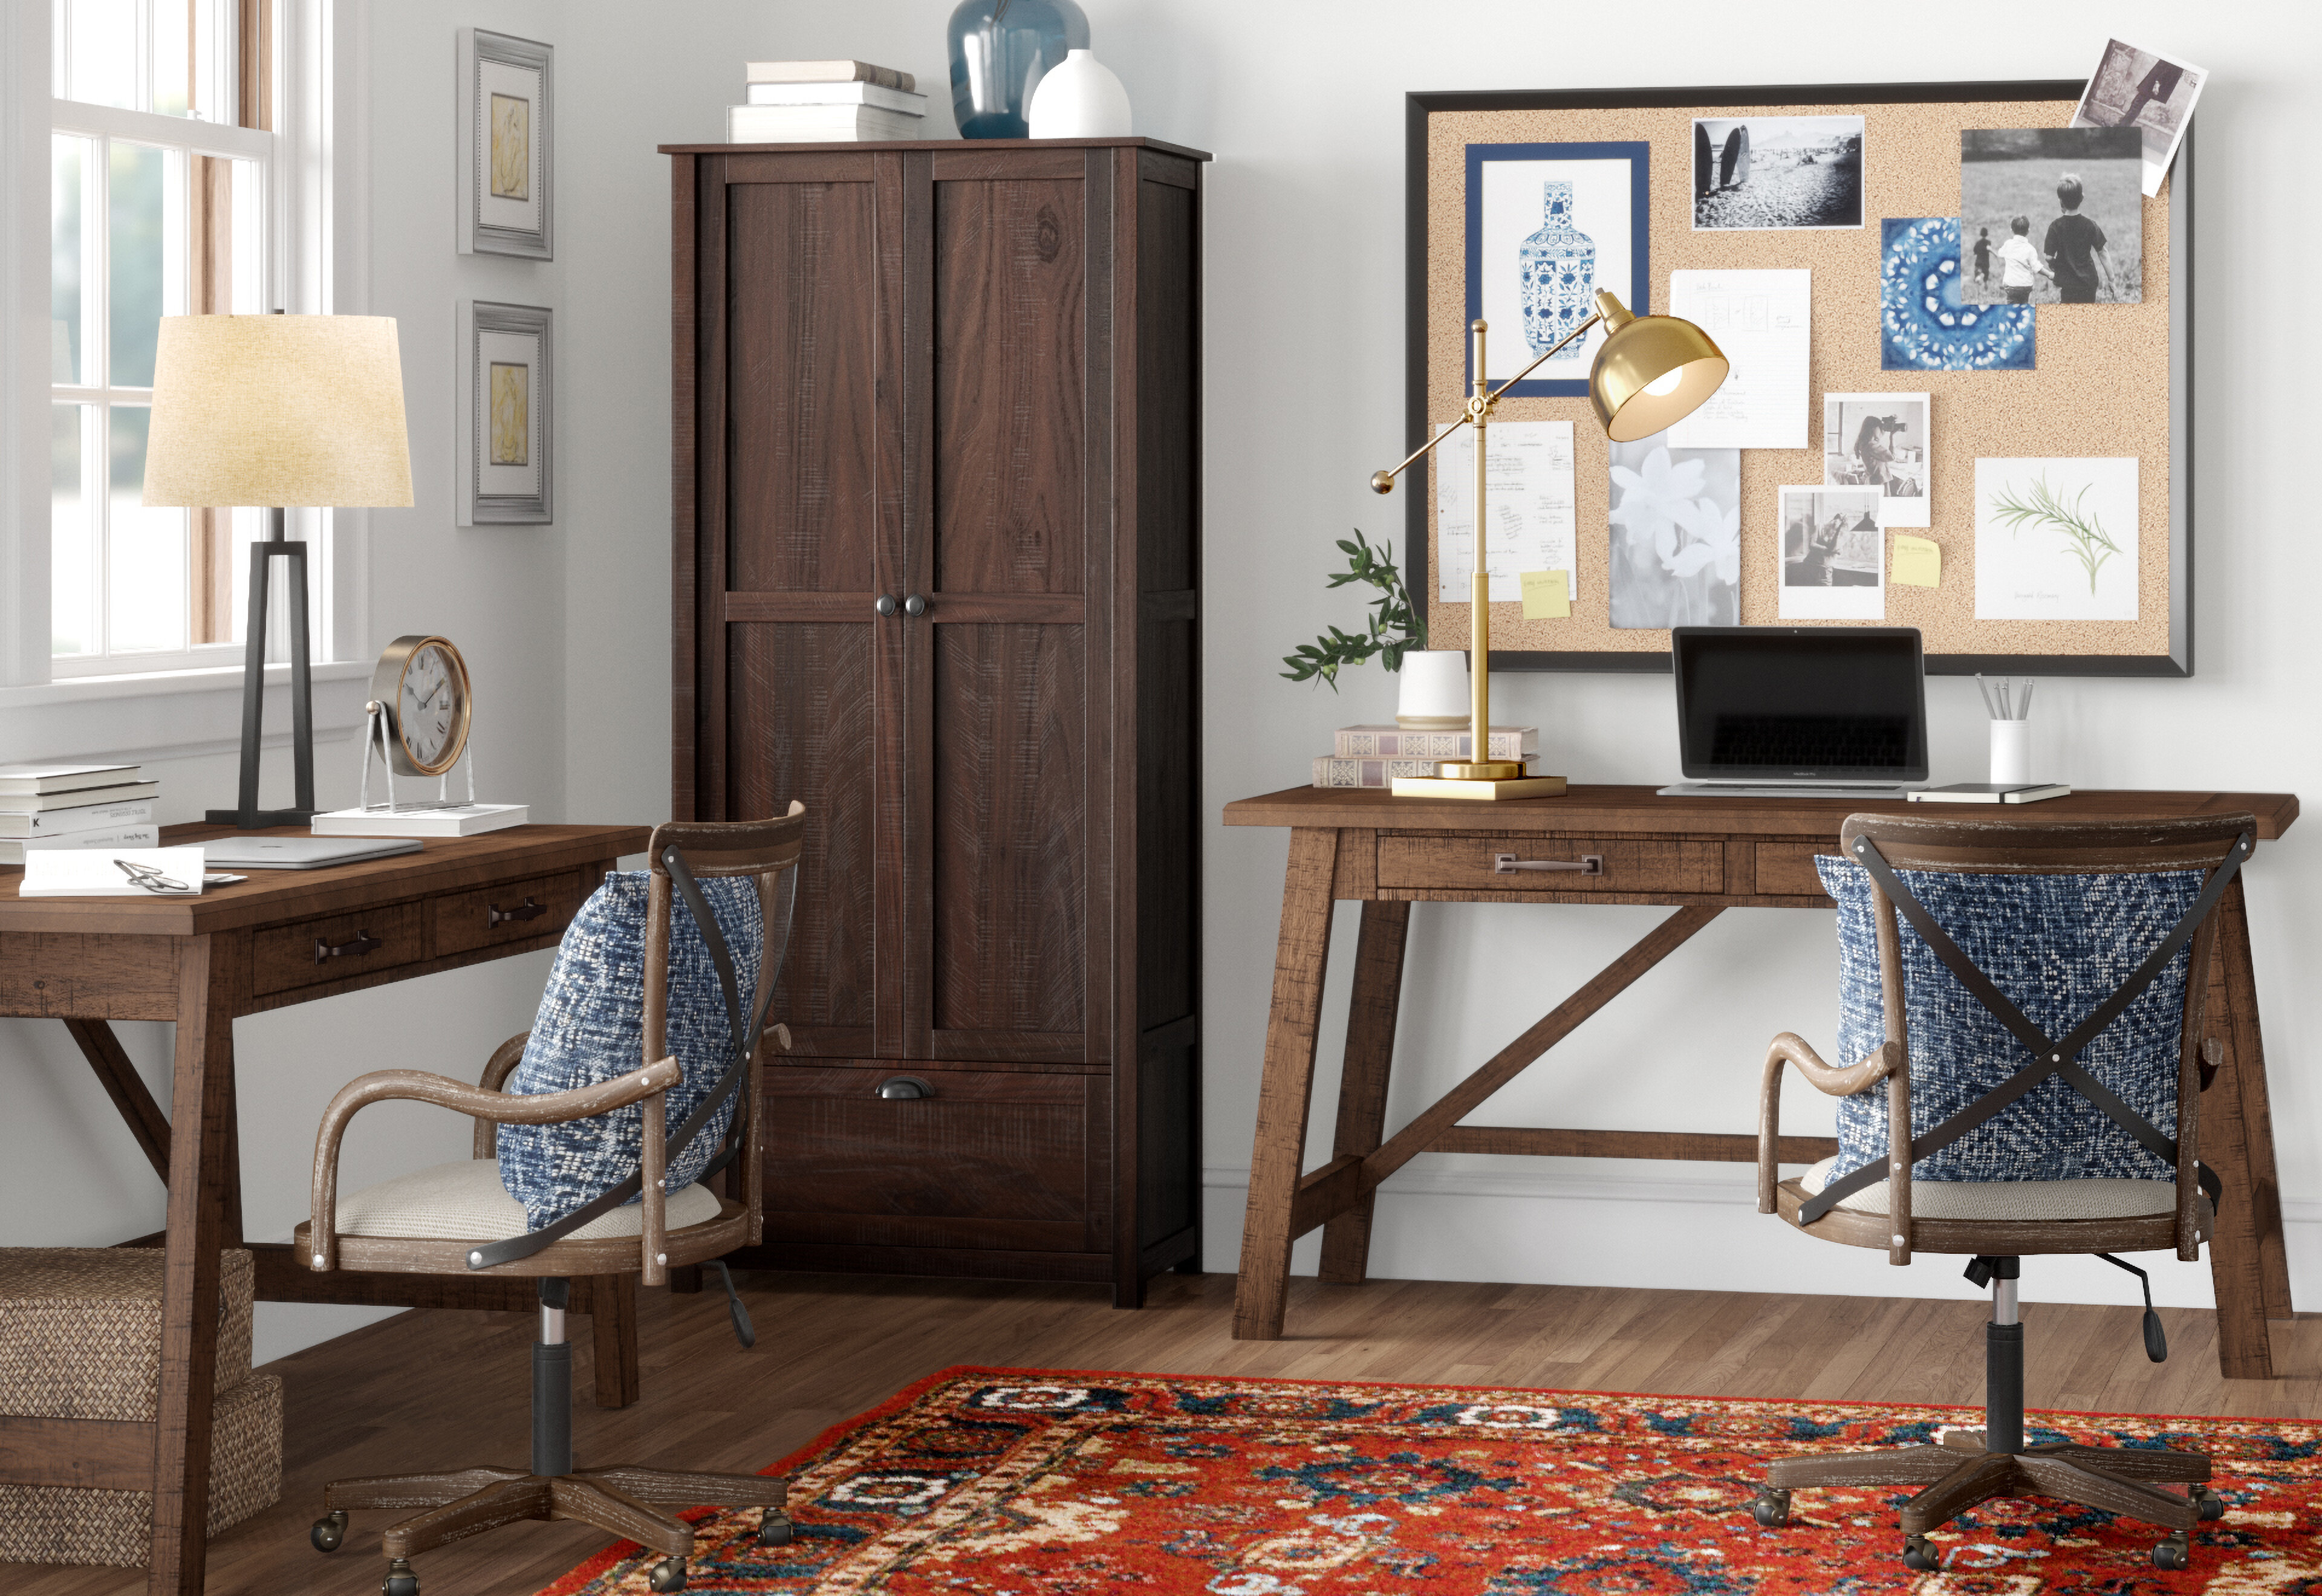 25 Home Office Ideas to Boost Your Productivity  Wayfair